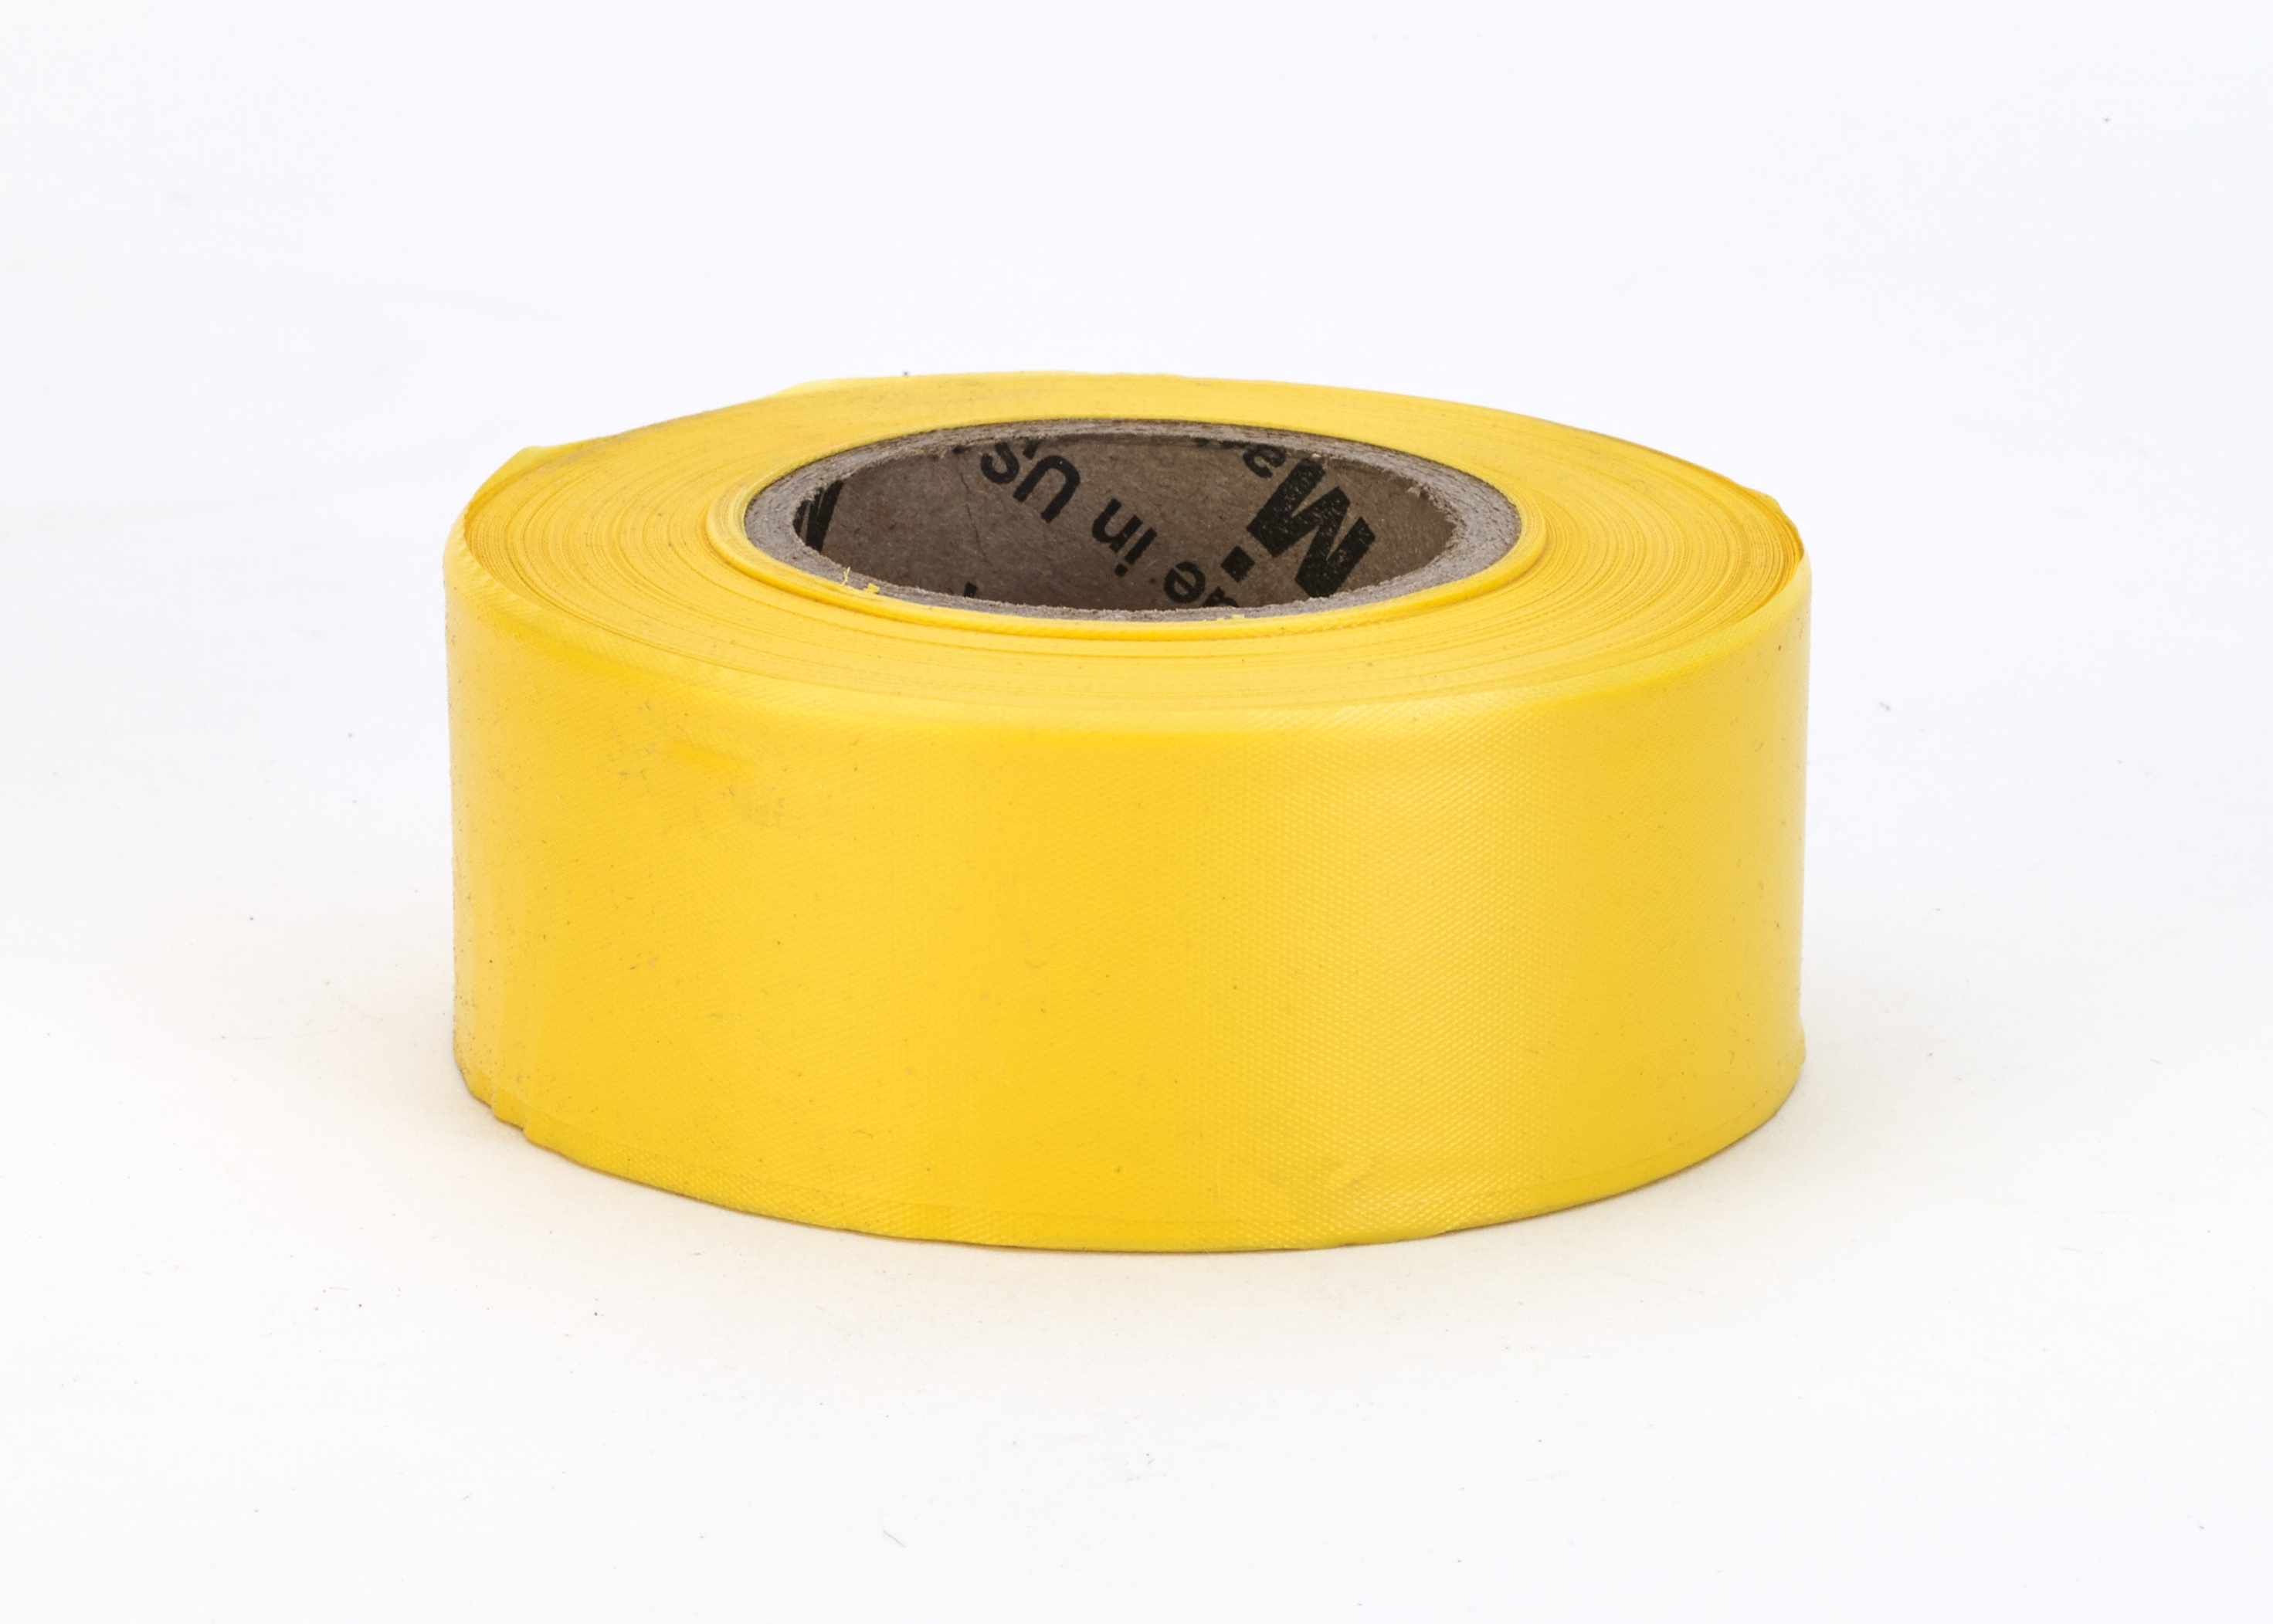 16002-41-1875, Flagging Tape, Ultra Standard, Yellow (Pack of 12), Mutual Industries